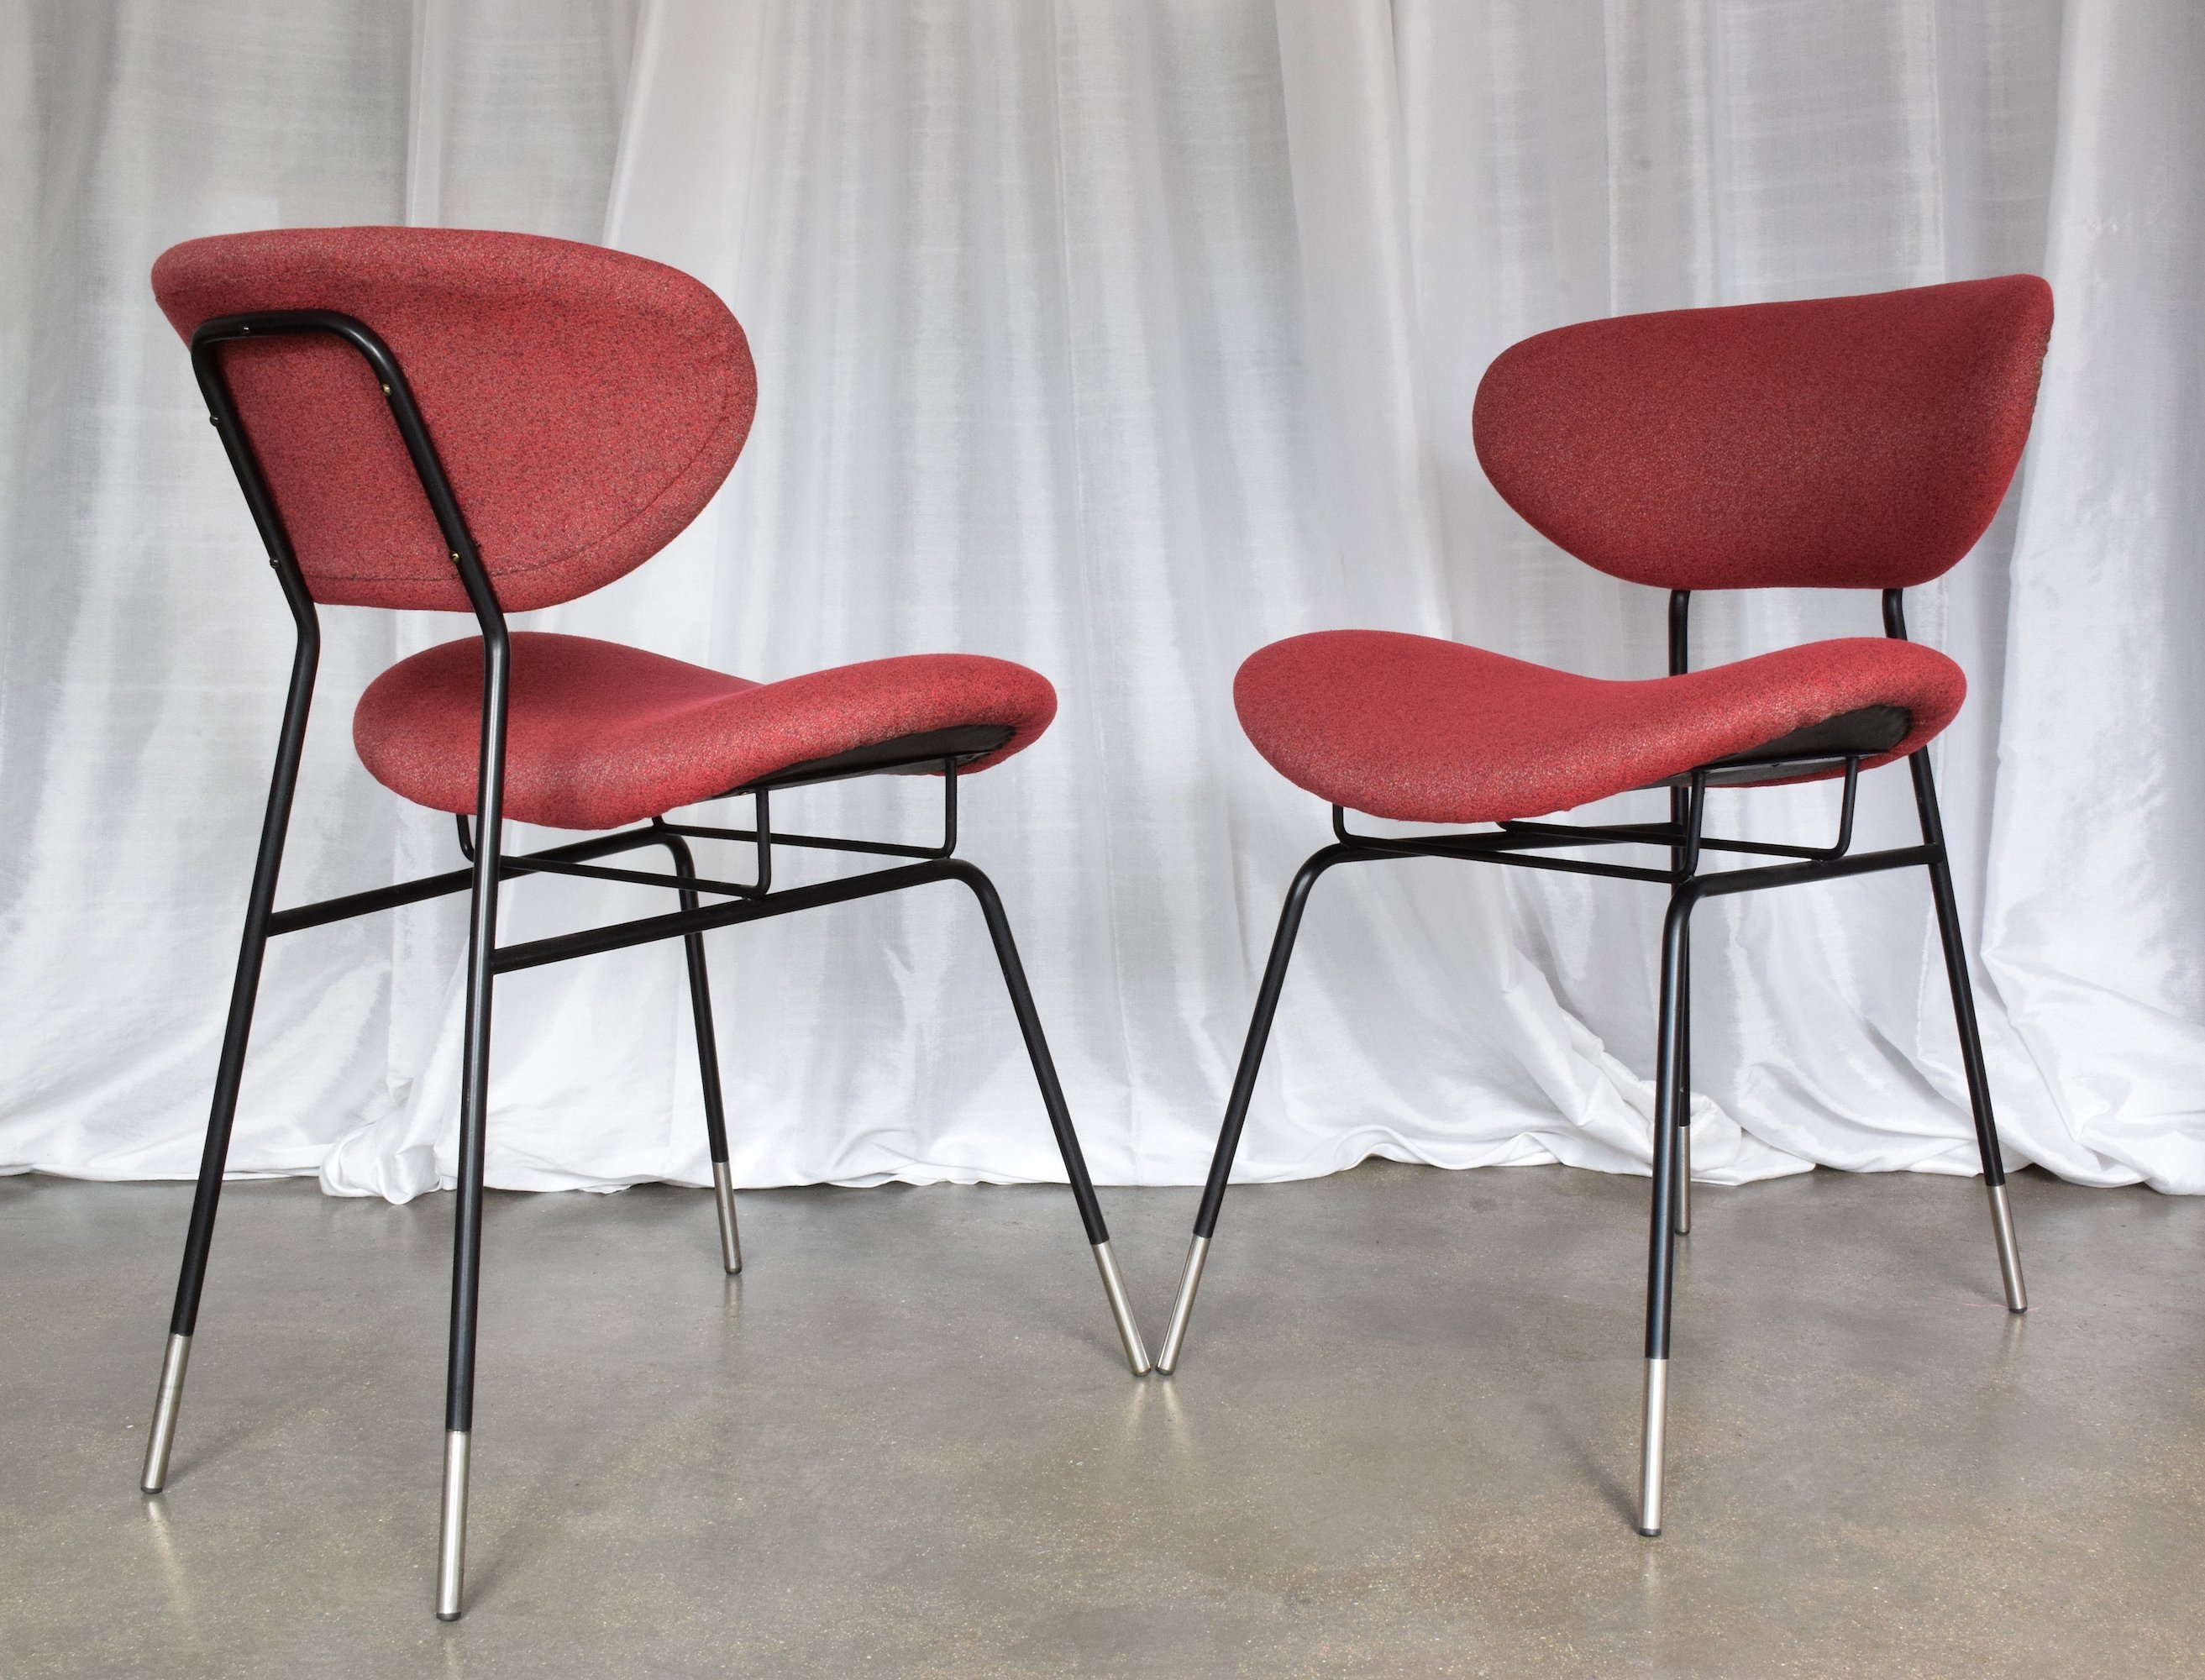 Pair Of Italian Mid Century Chairs By Gastone Renaldi For Rima 1950